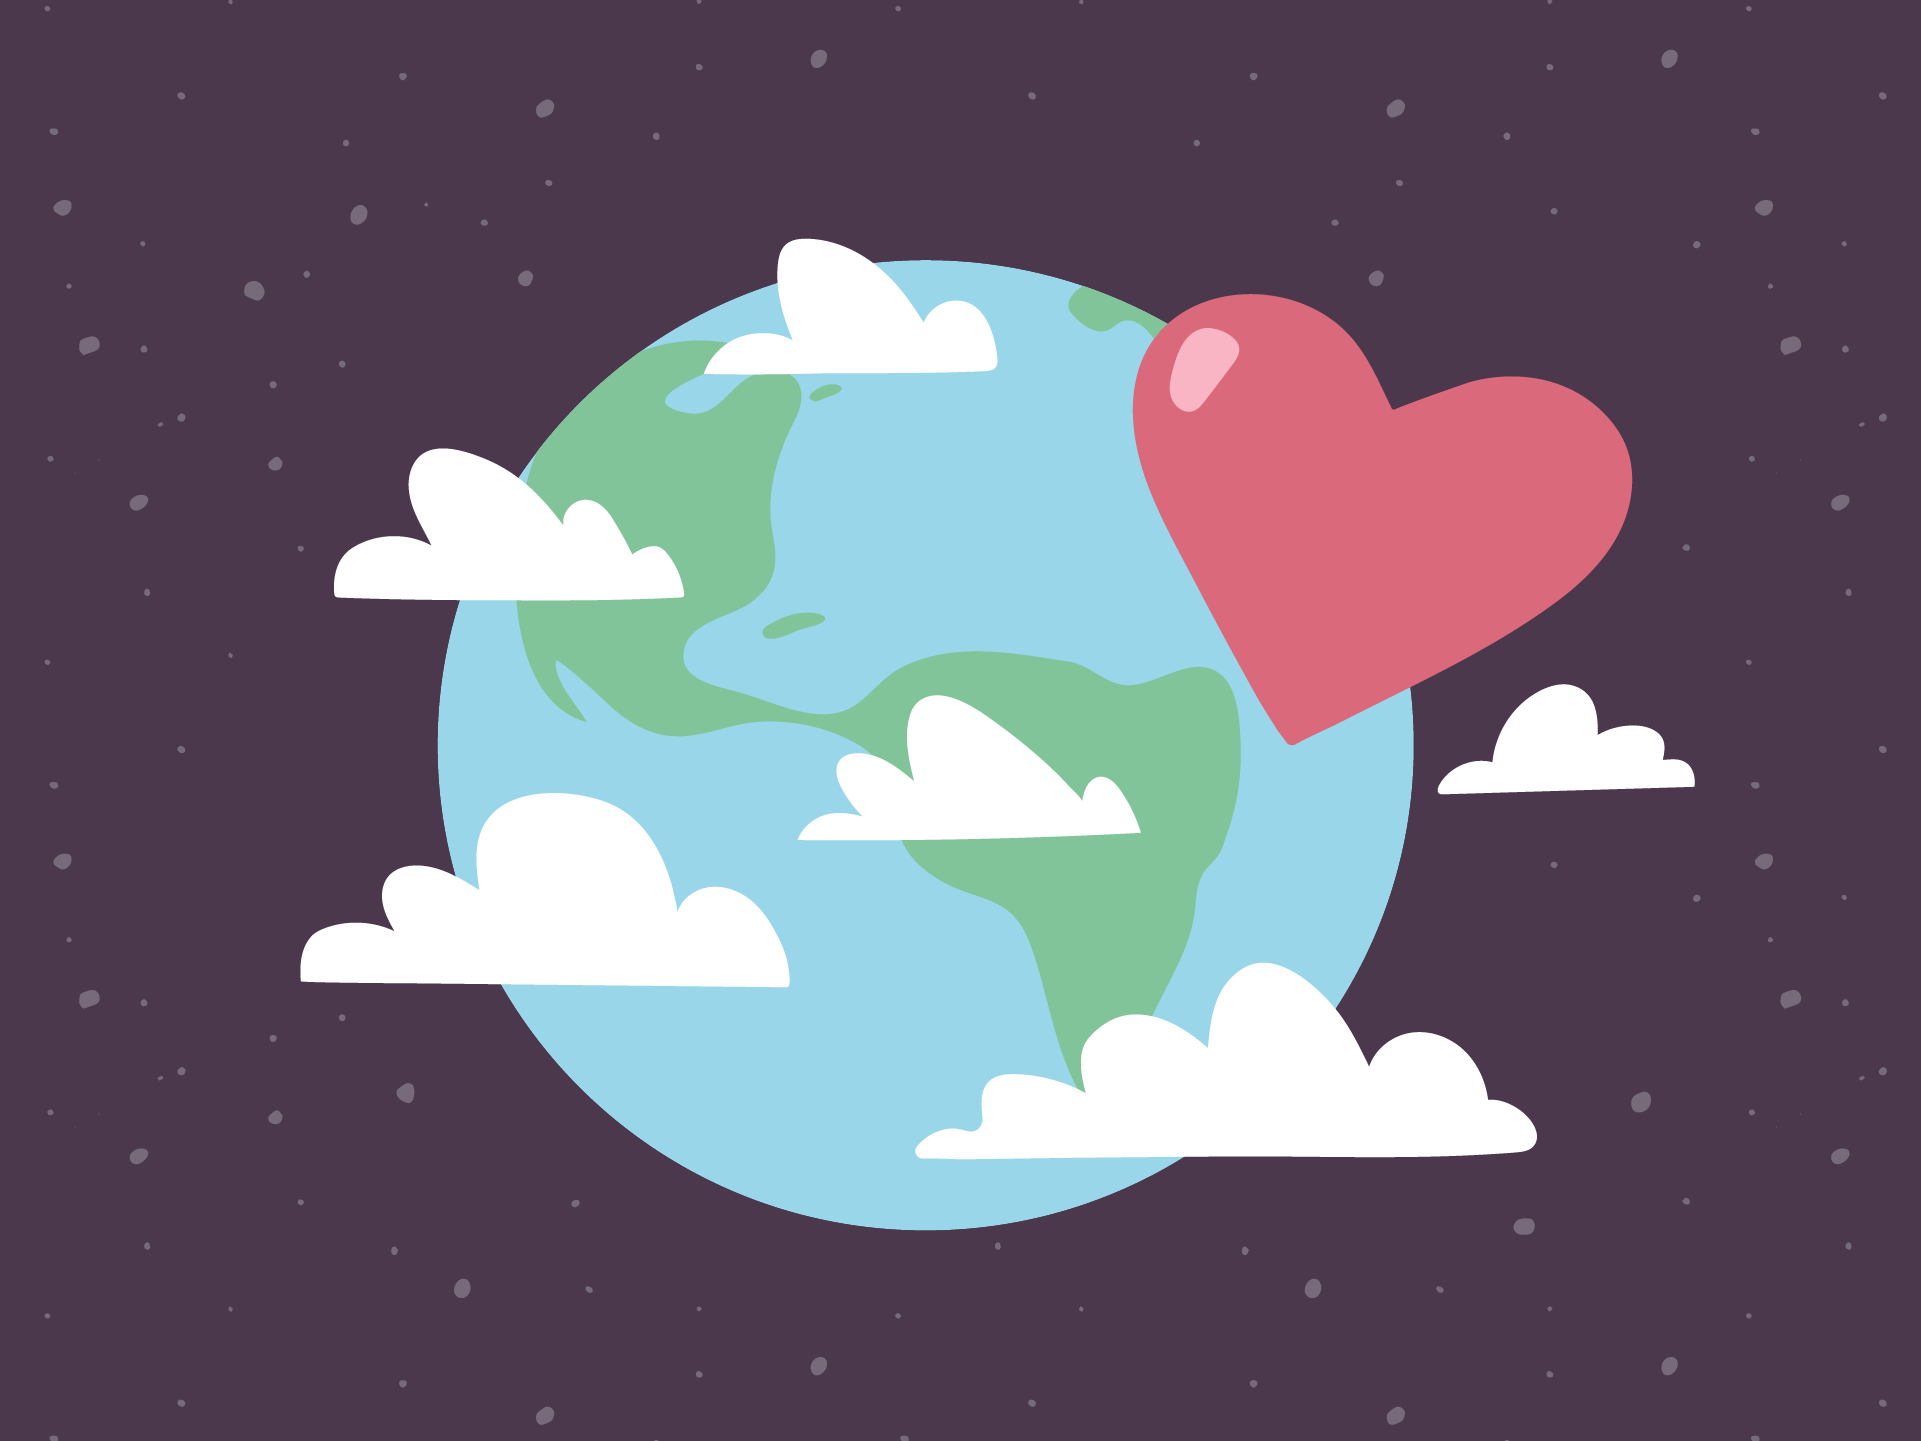 Illustration of the Earth in space with a heart